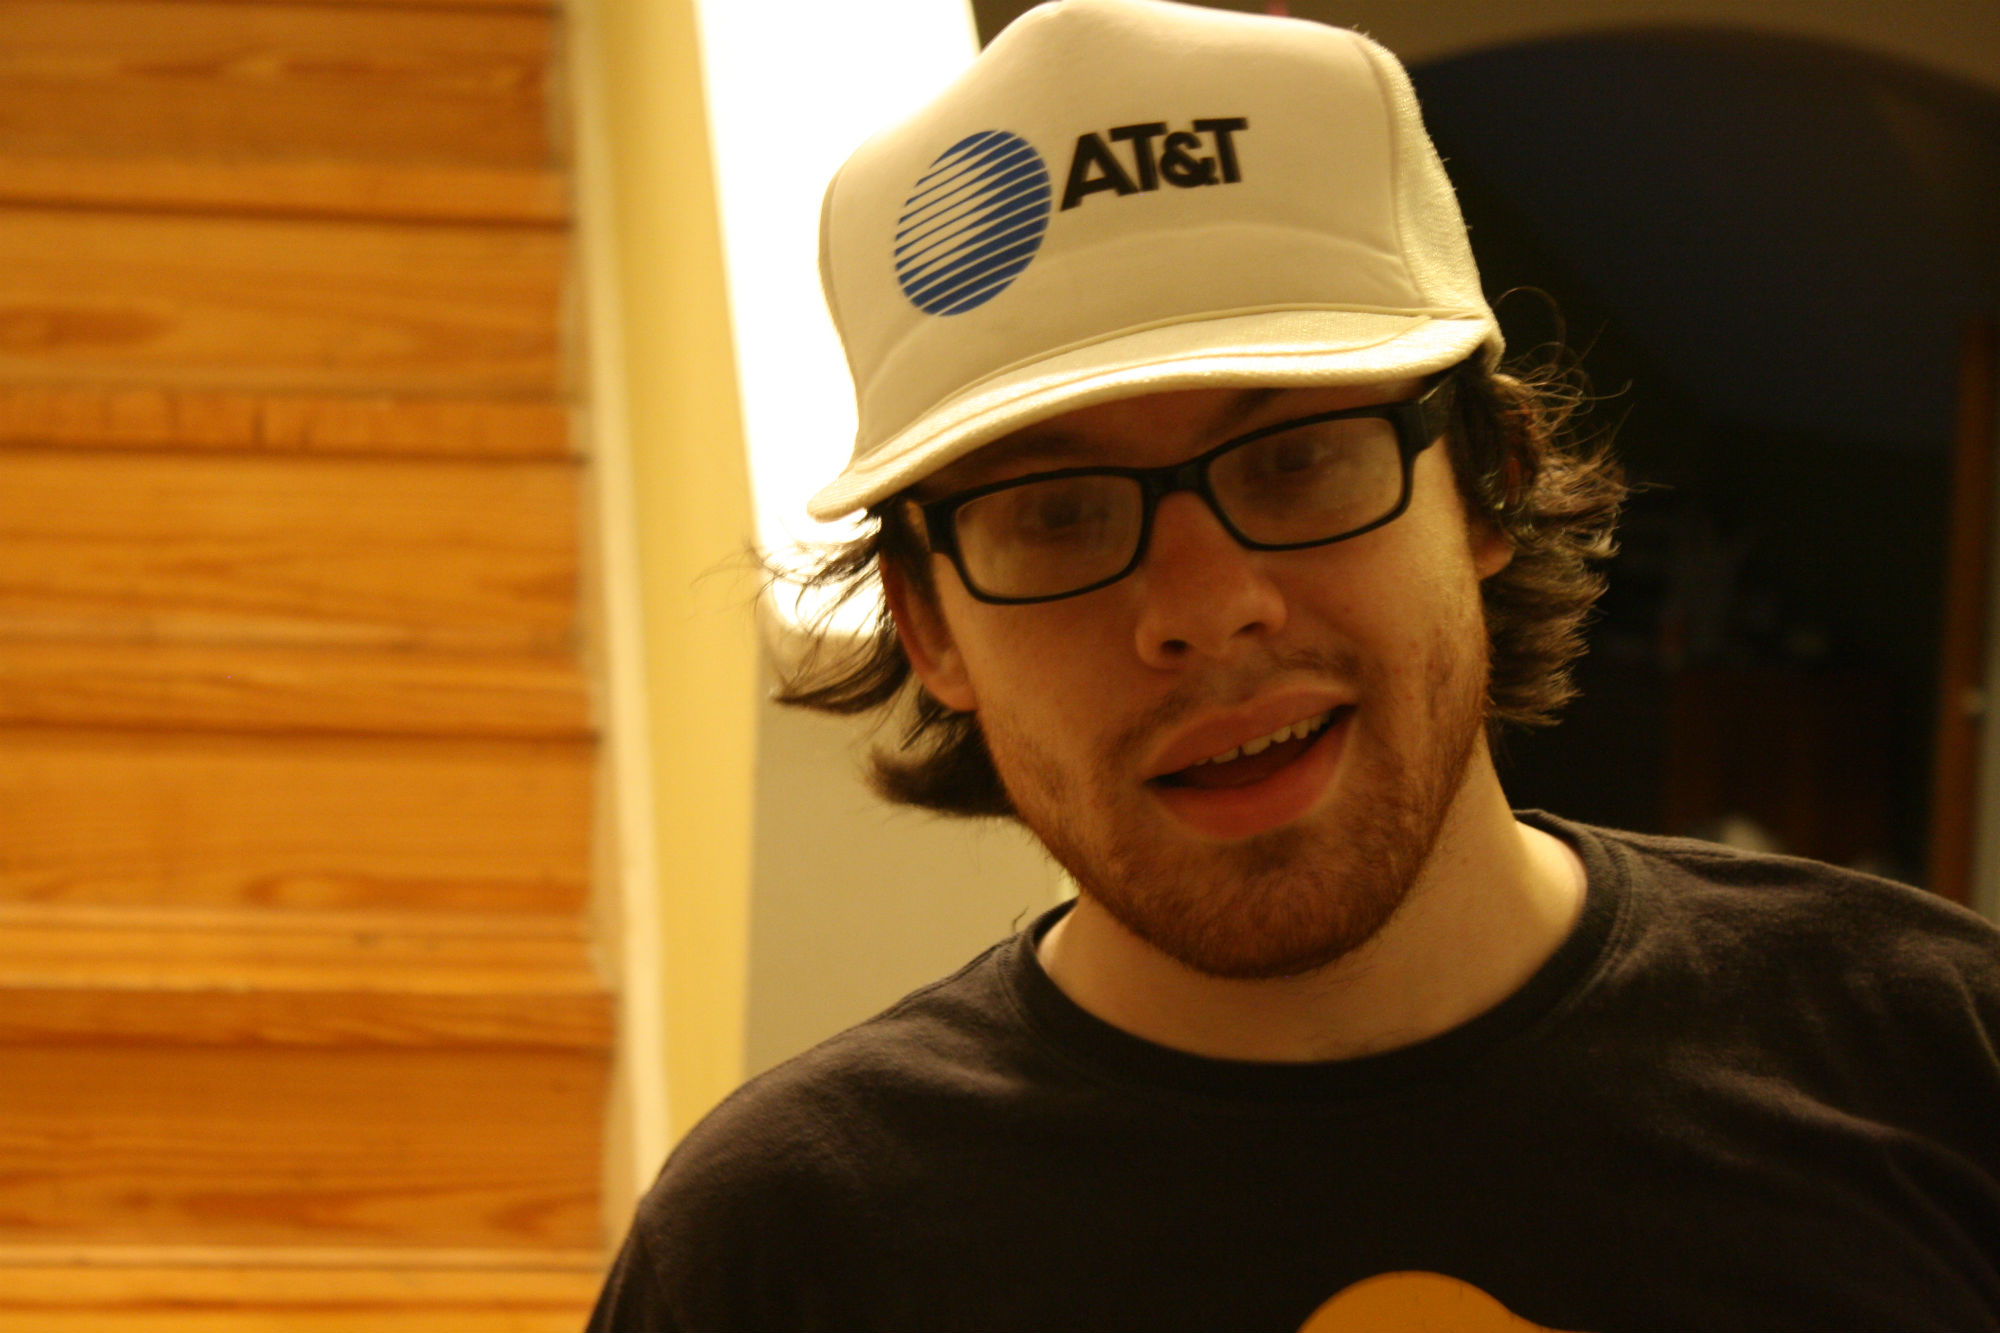 Hacker 'Weev' Threatens to Dox 'Dozens' of Prosecutors after Keys Conviction